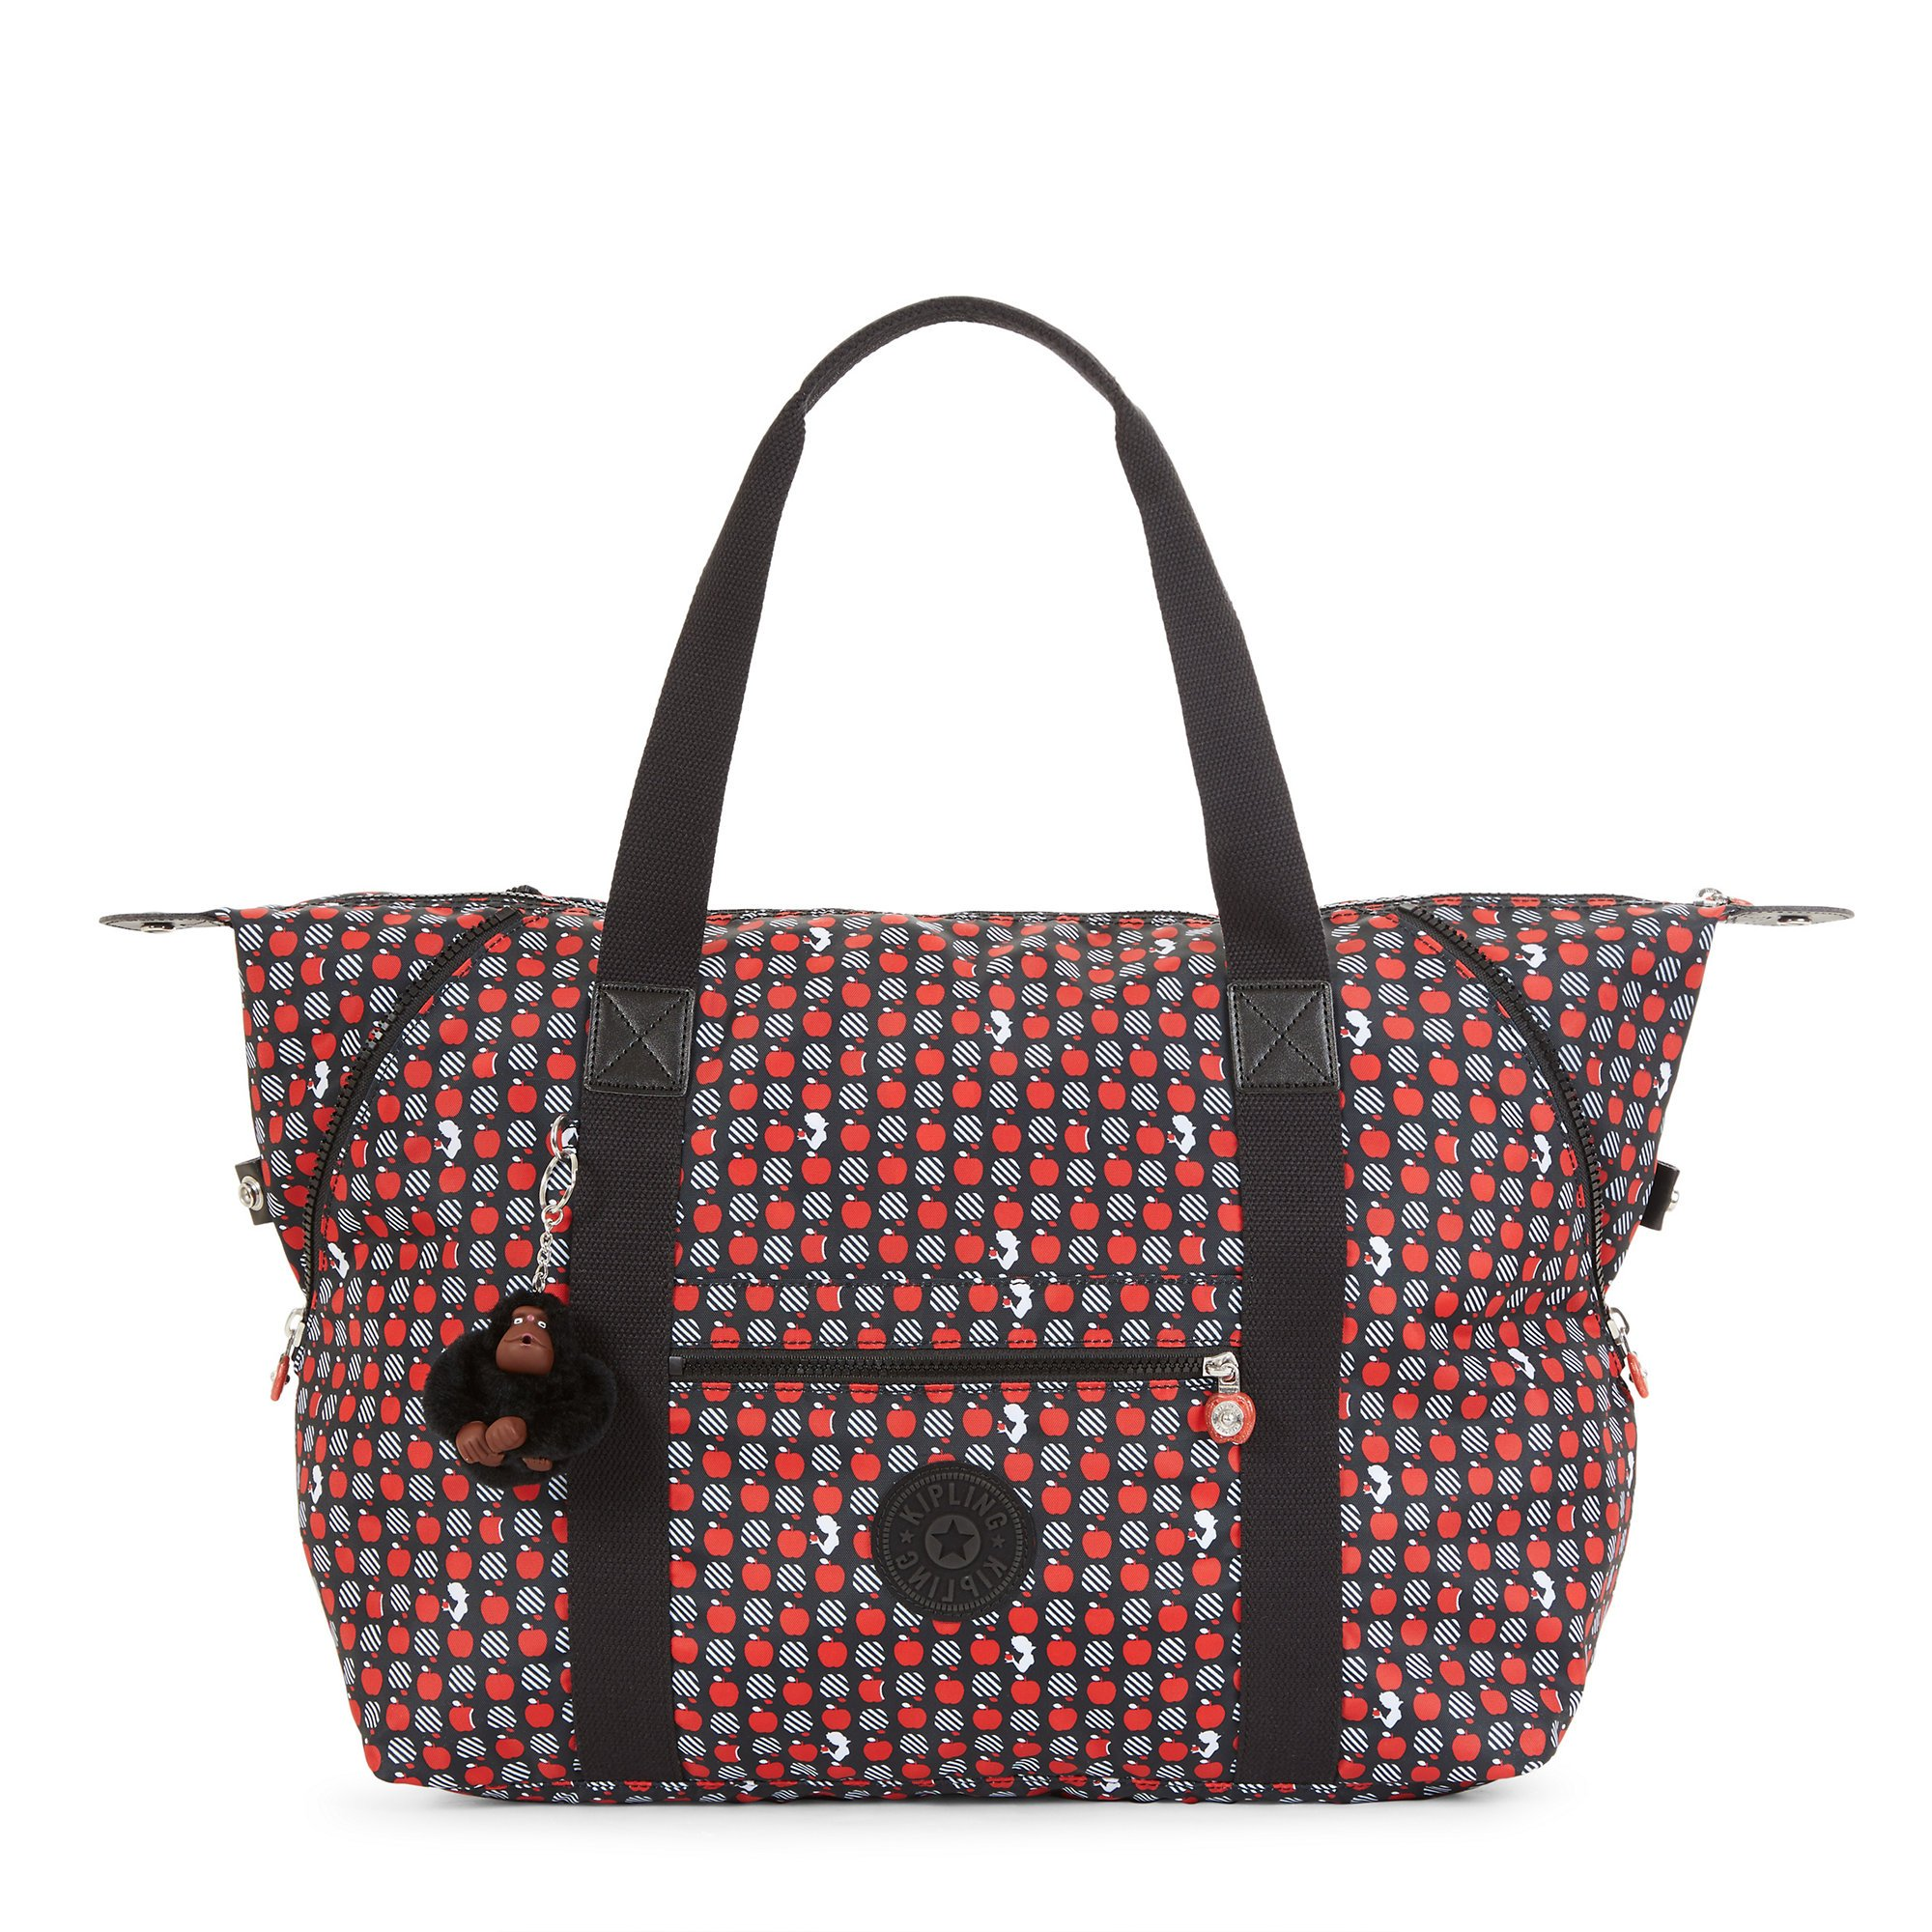 Kipling Disney Snow White Collection Printed Art M Tote, Hypnotic Apple by Kipling